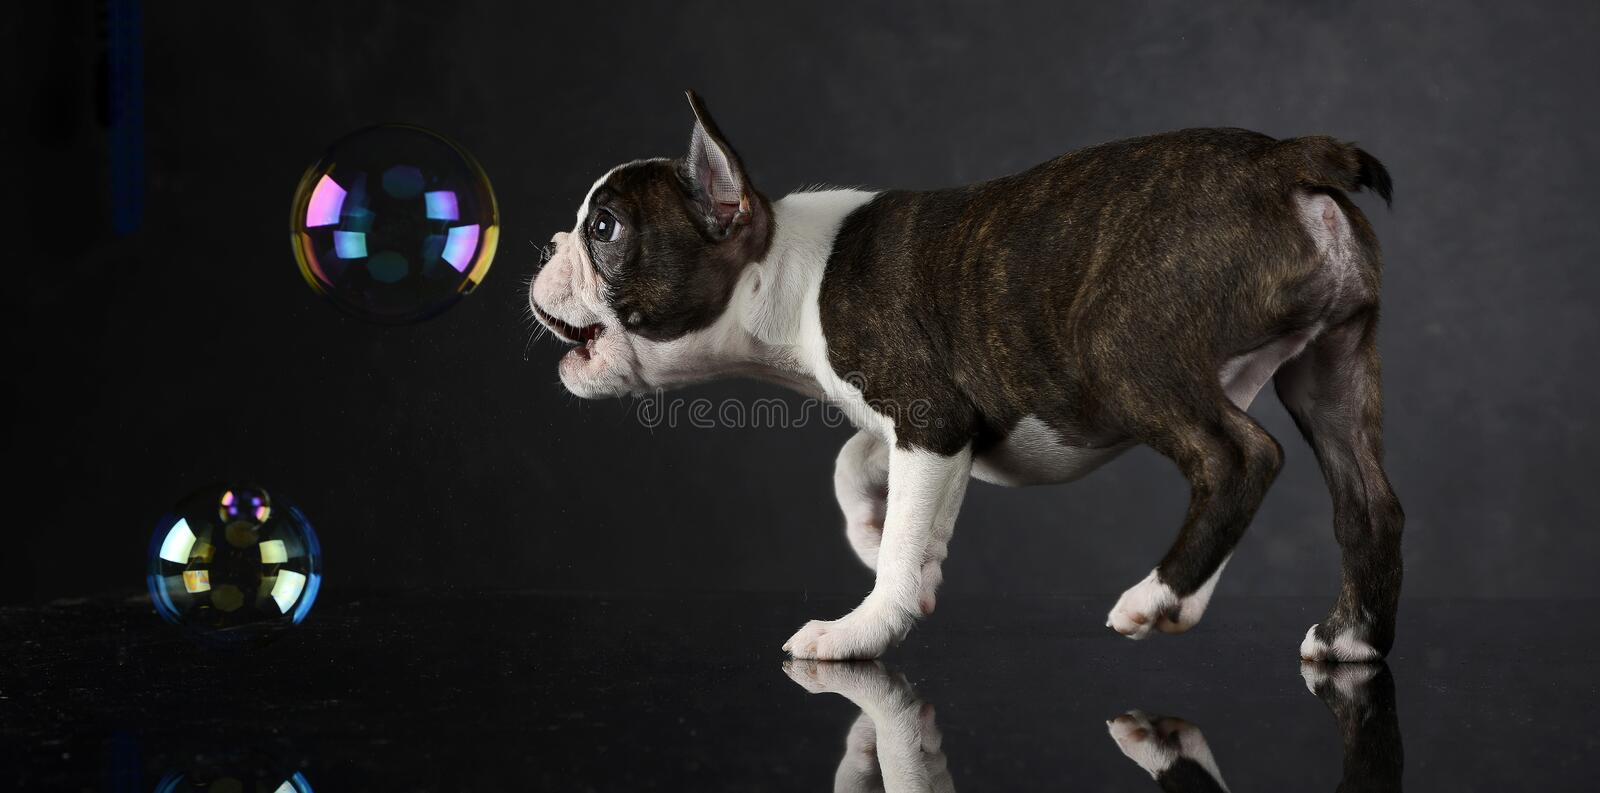 Puppy Boston Terrier plays with bubbles in a photo studio stock photography